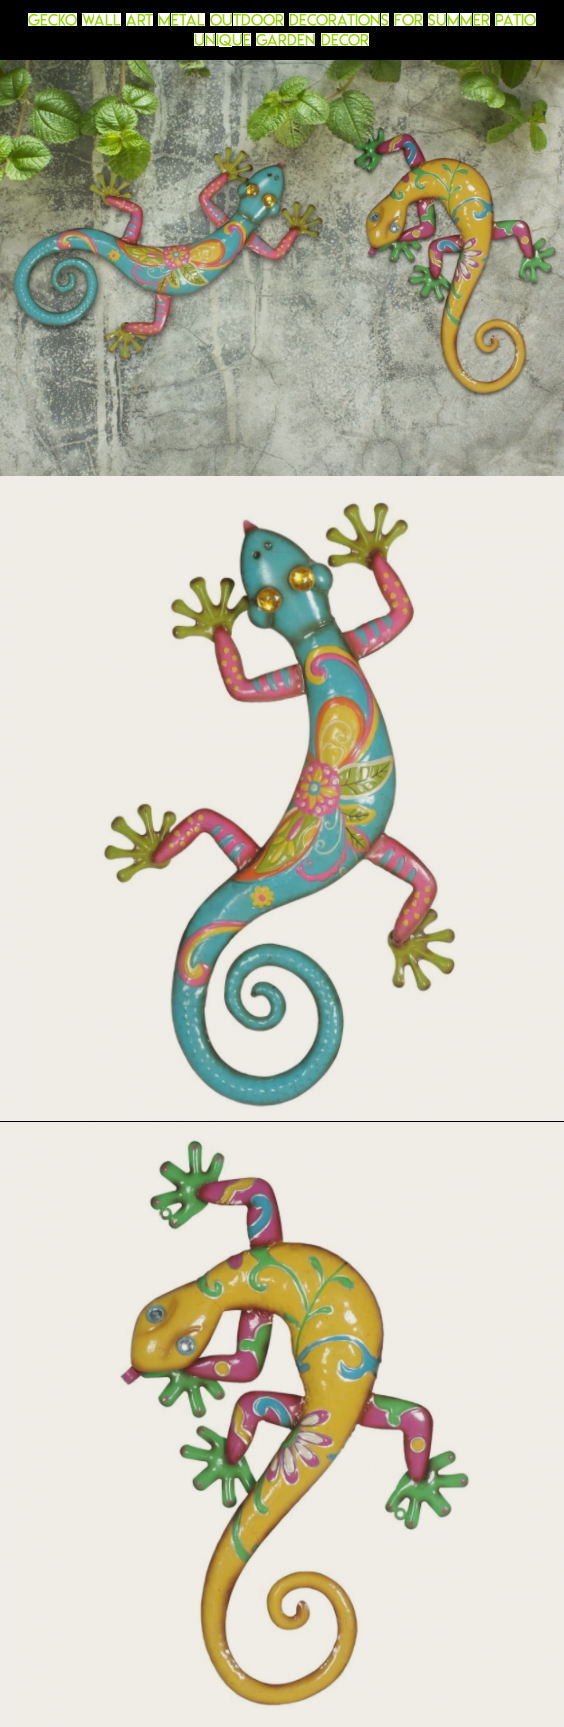 gecko wall art metal outdoor decorations for summer patio unique